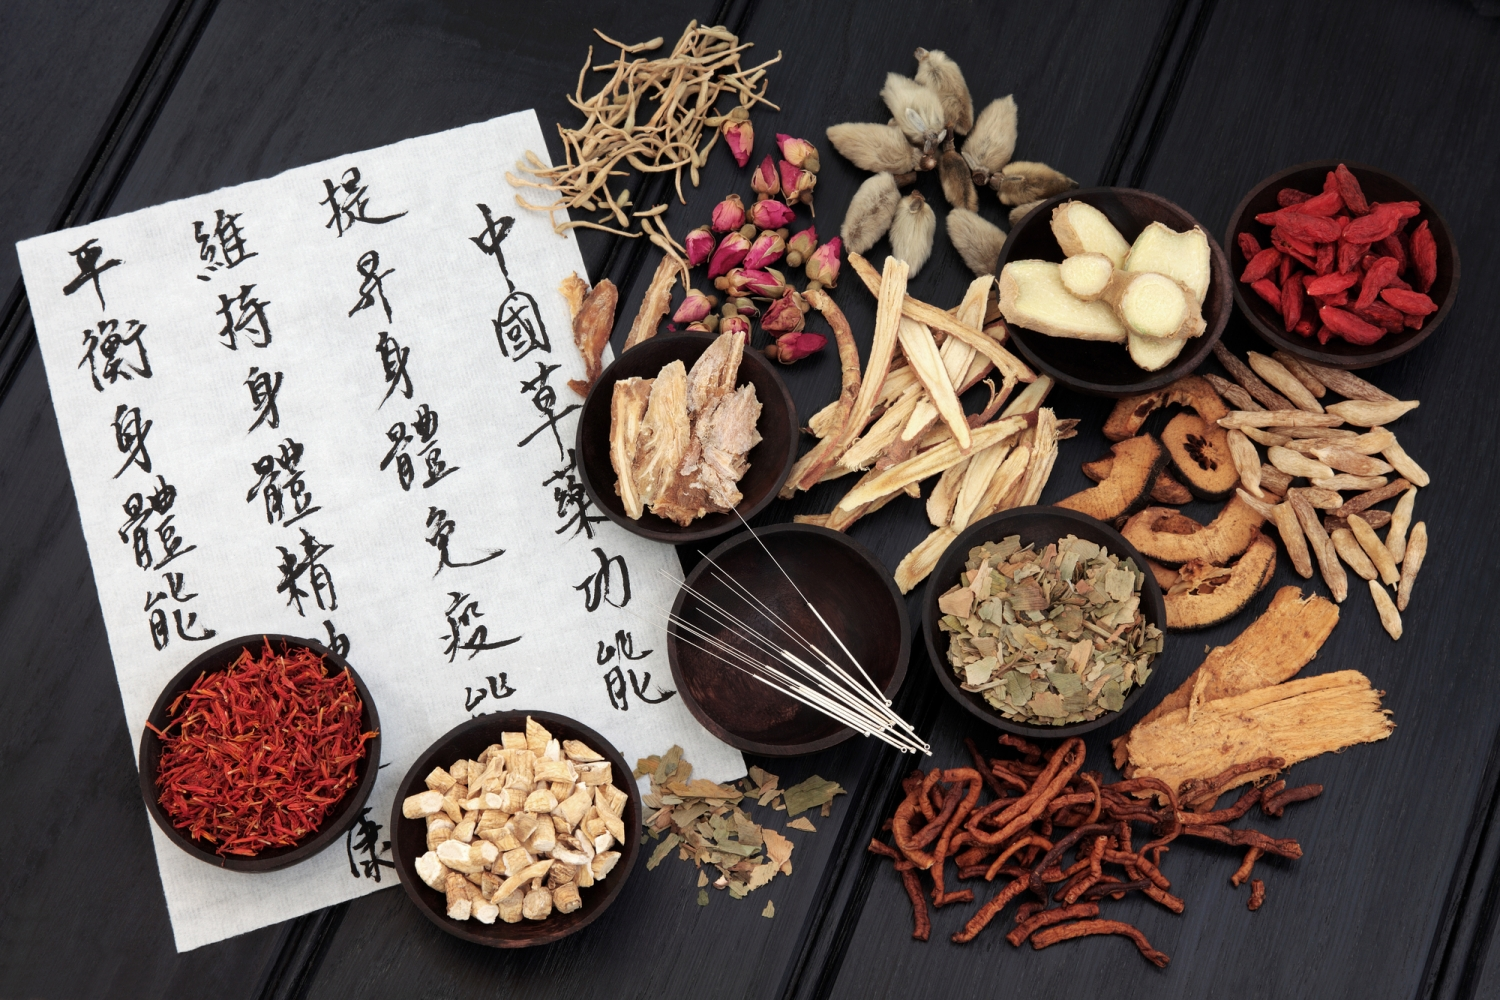 Chinese herbs for IBS